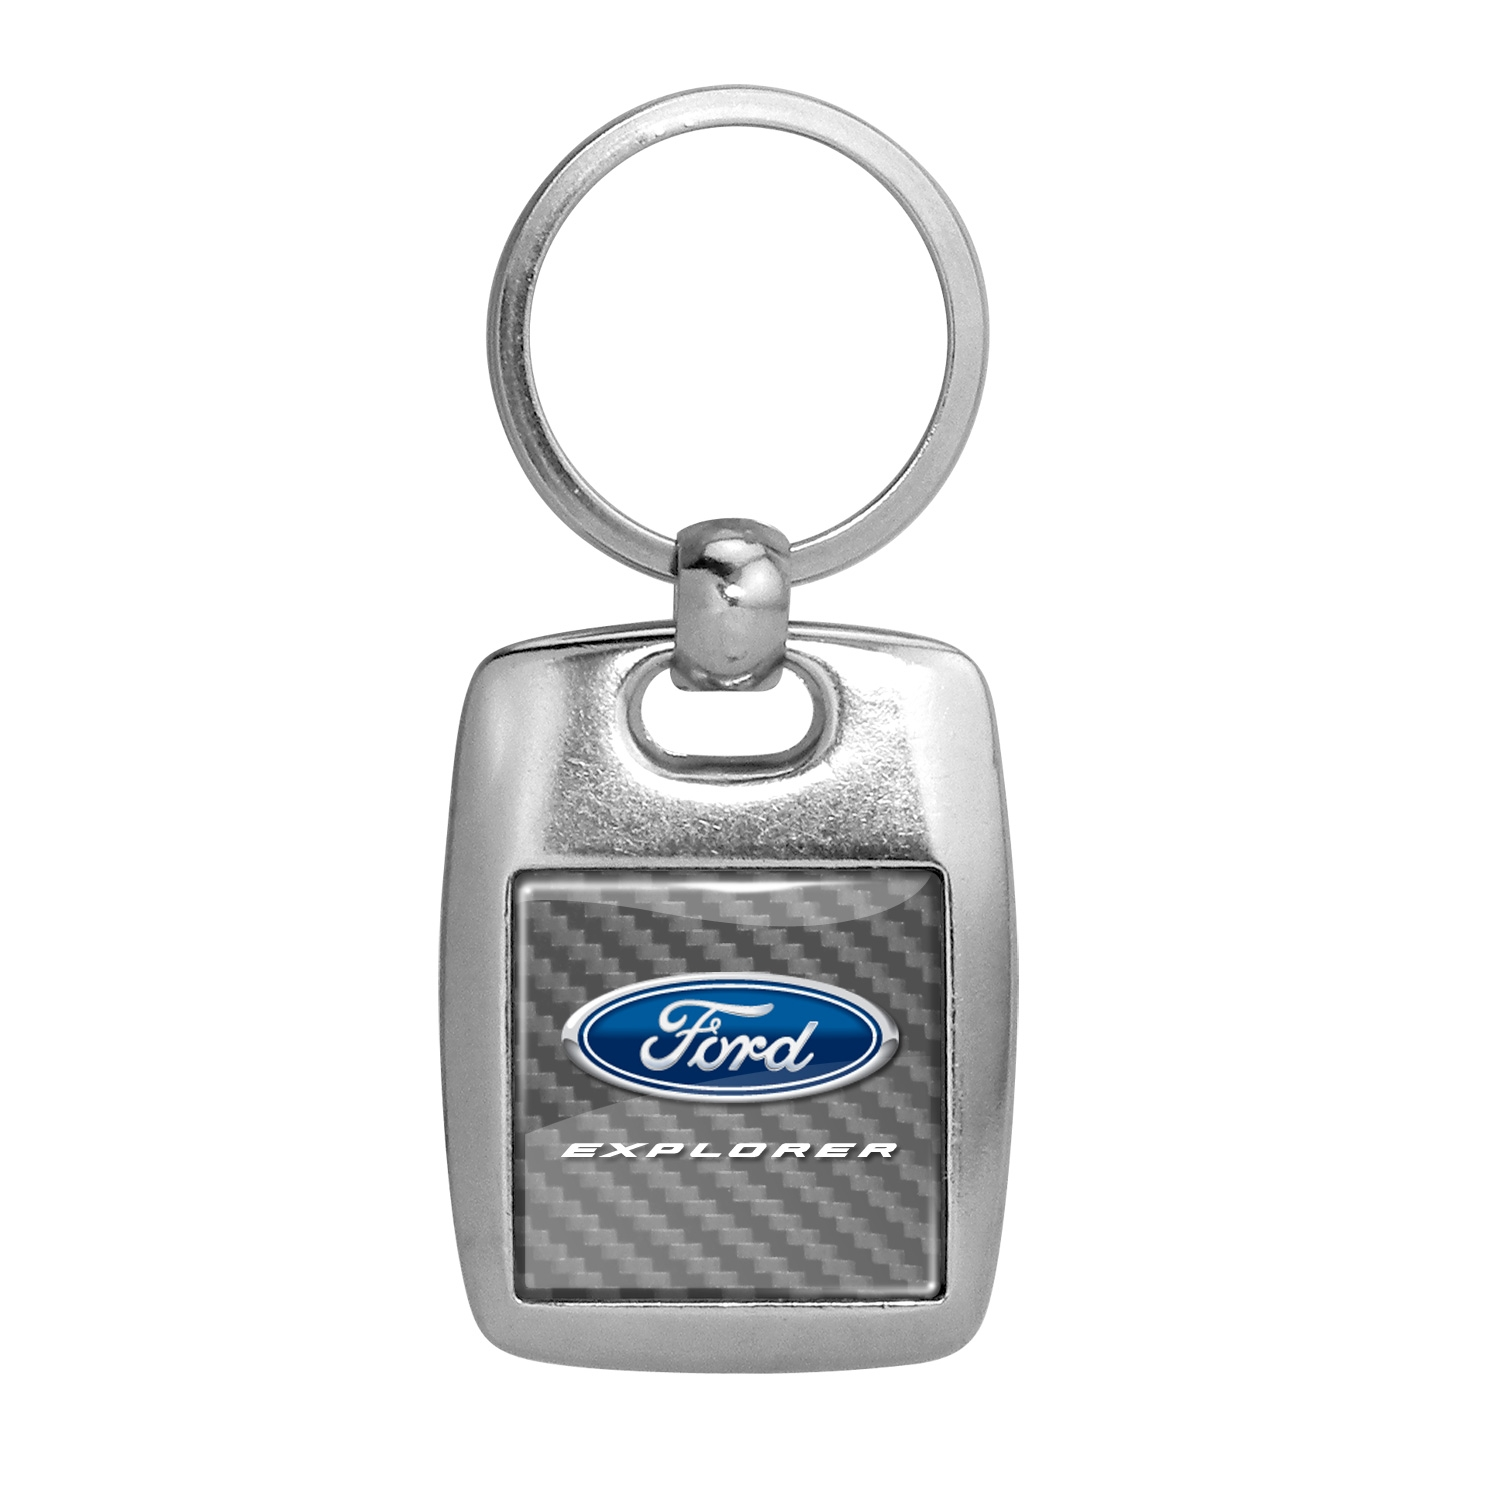 Ford Explorer Silver Carbon Fiber Backing Brush Metal Key Chain